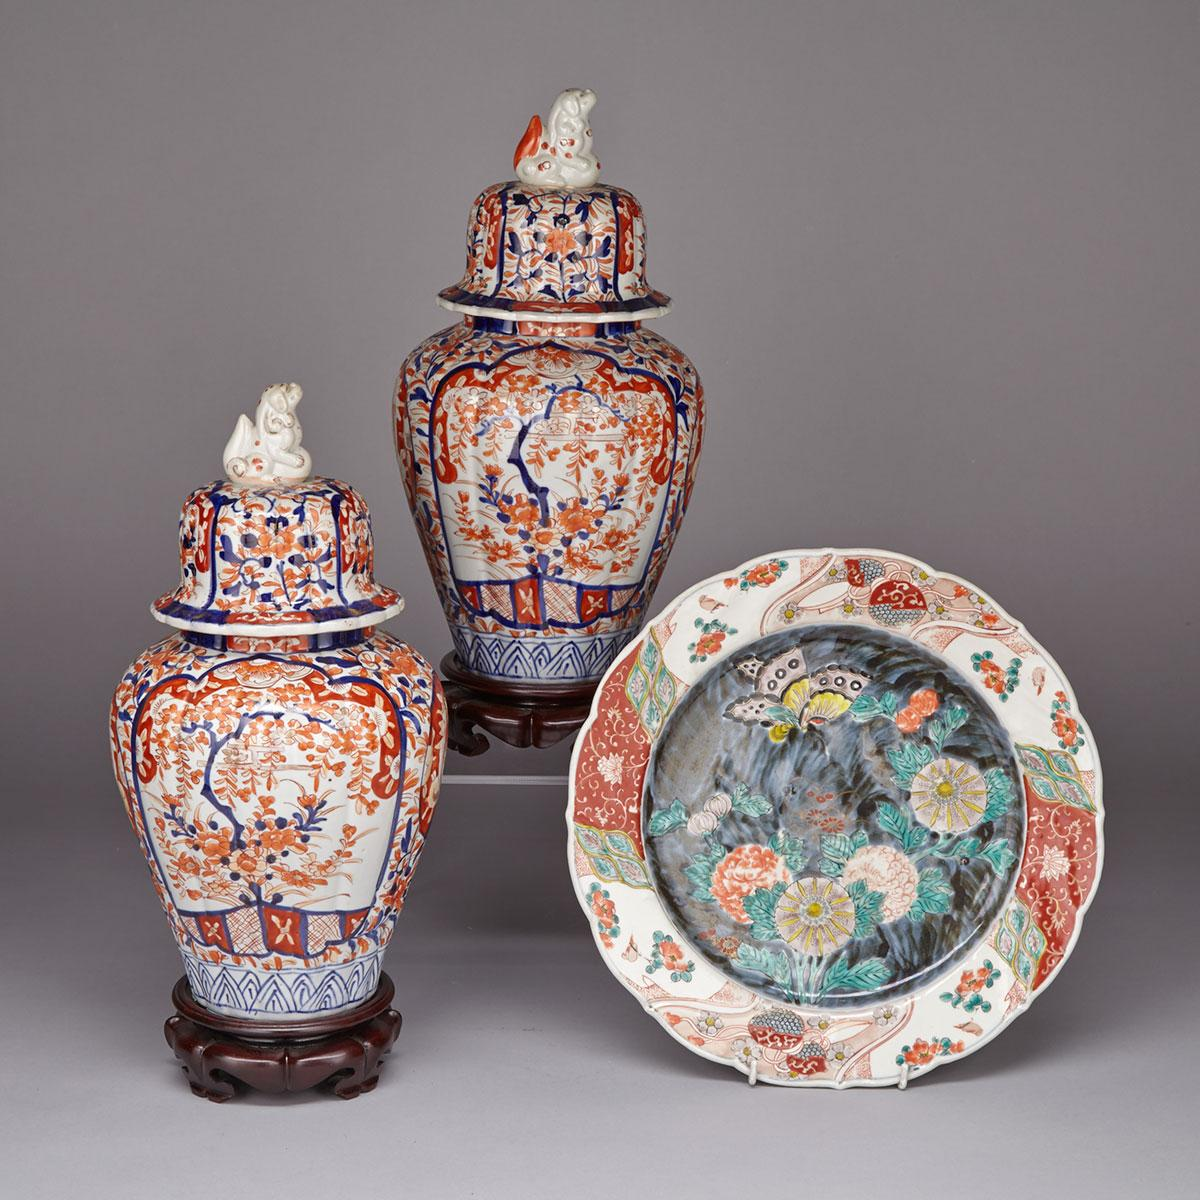 Pair of Fluted Imari Jars and Covers, 19th Century